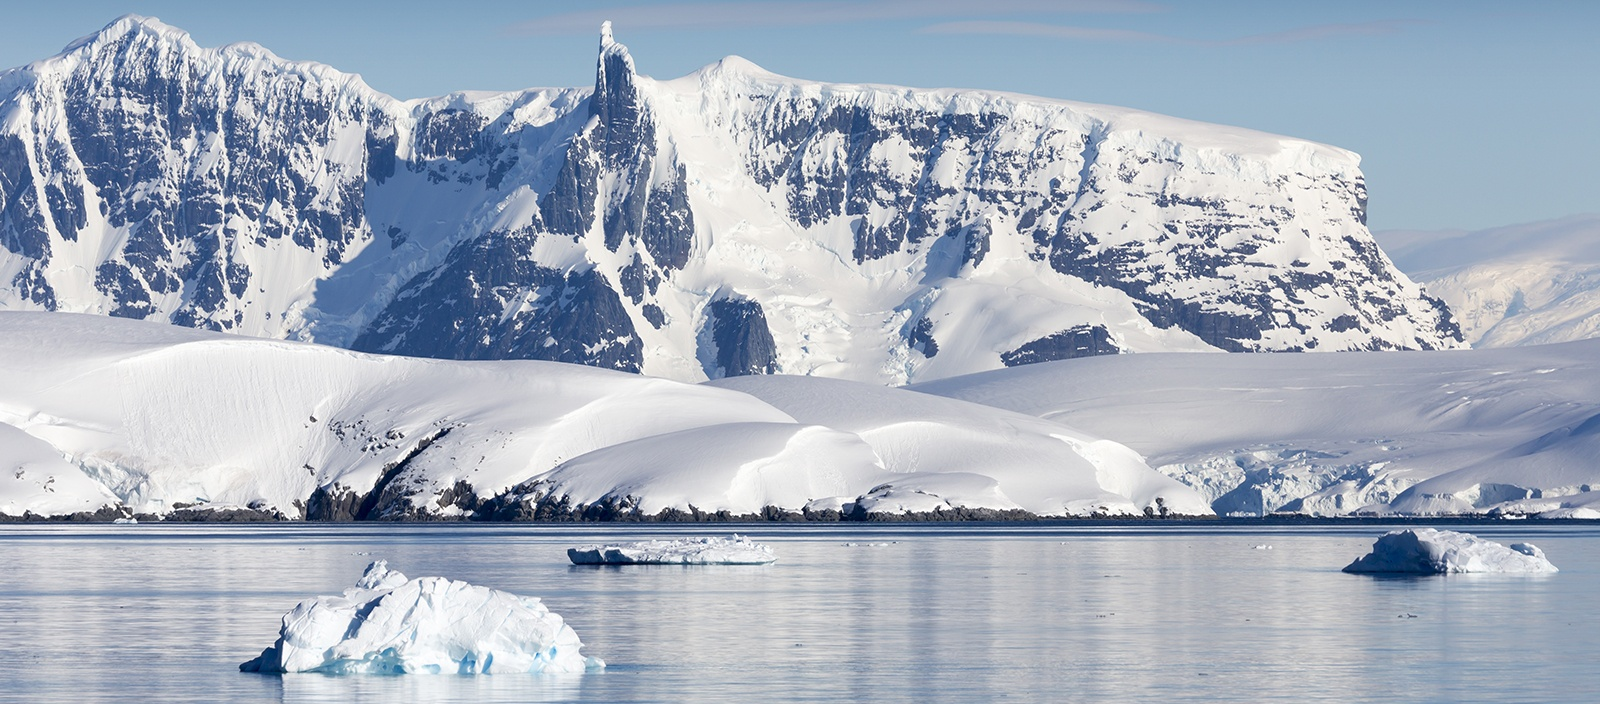 Antarctica: The Magic of the White Continent